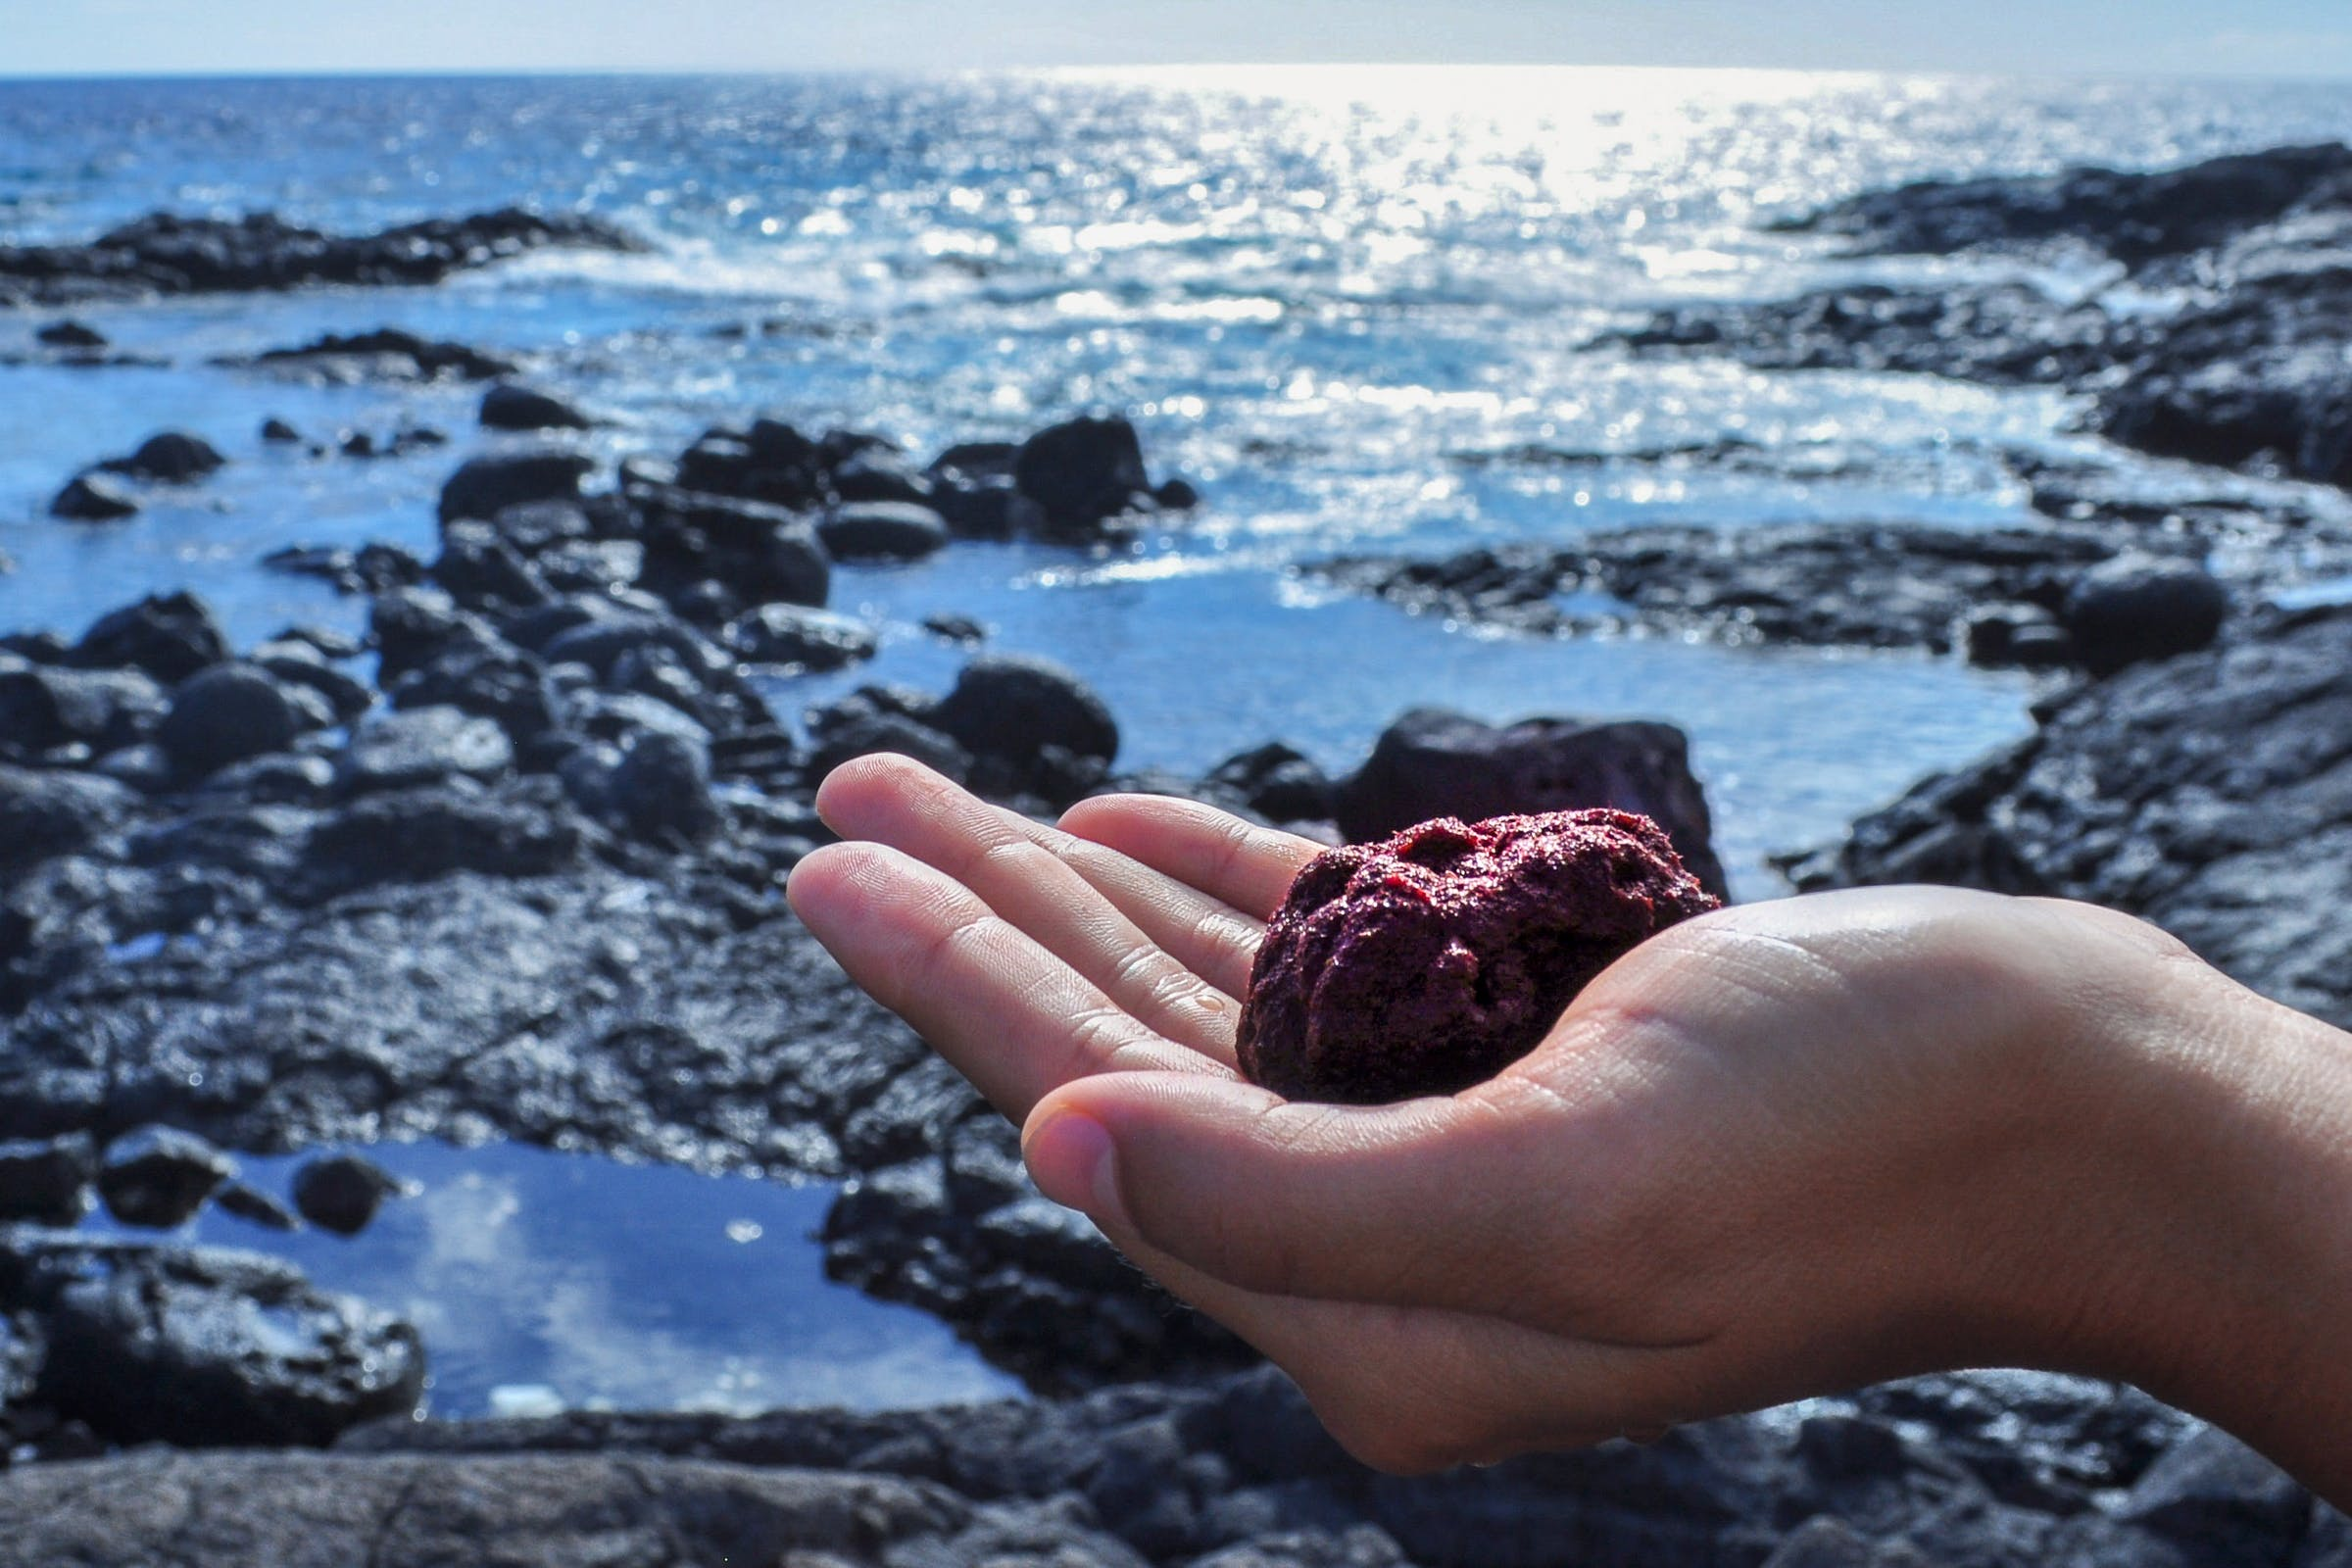 A hand holds a red mound in front of the ocean.